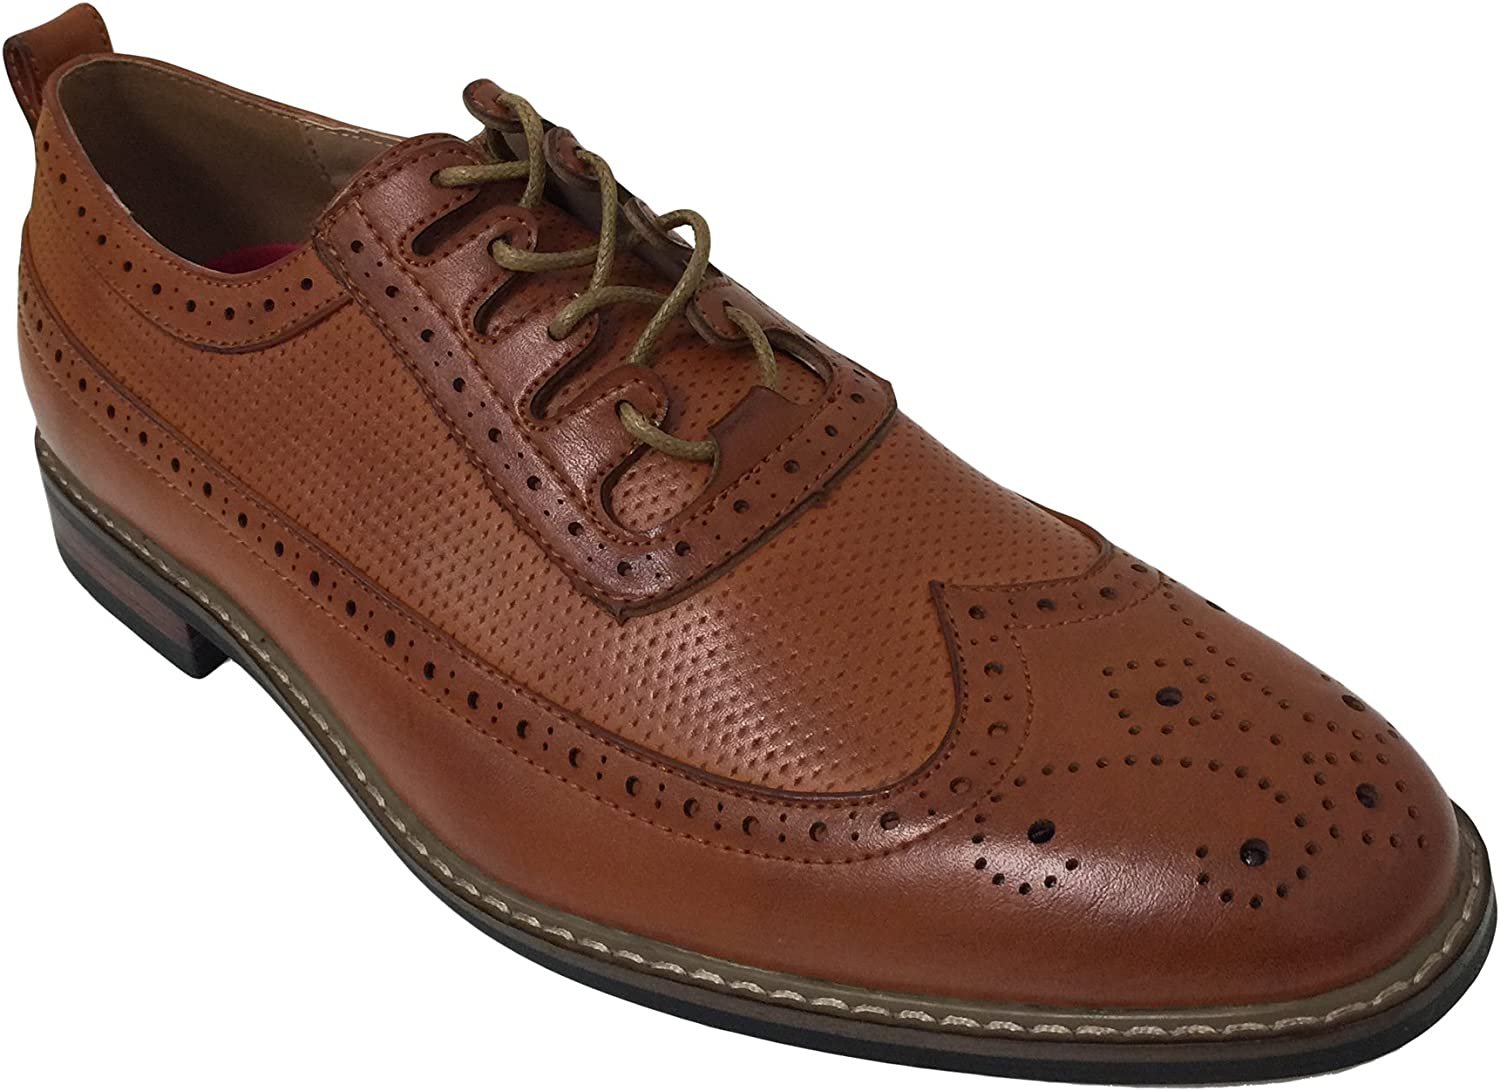 BWO4D Men's Oxfords Wing Tip Lace up Leather Lined Fashion Brogue Casual Classic Dress Shoes